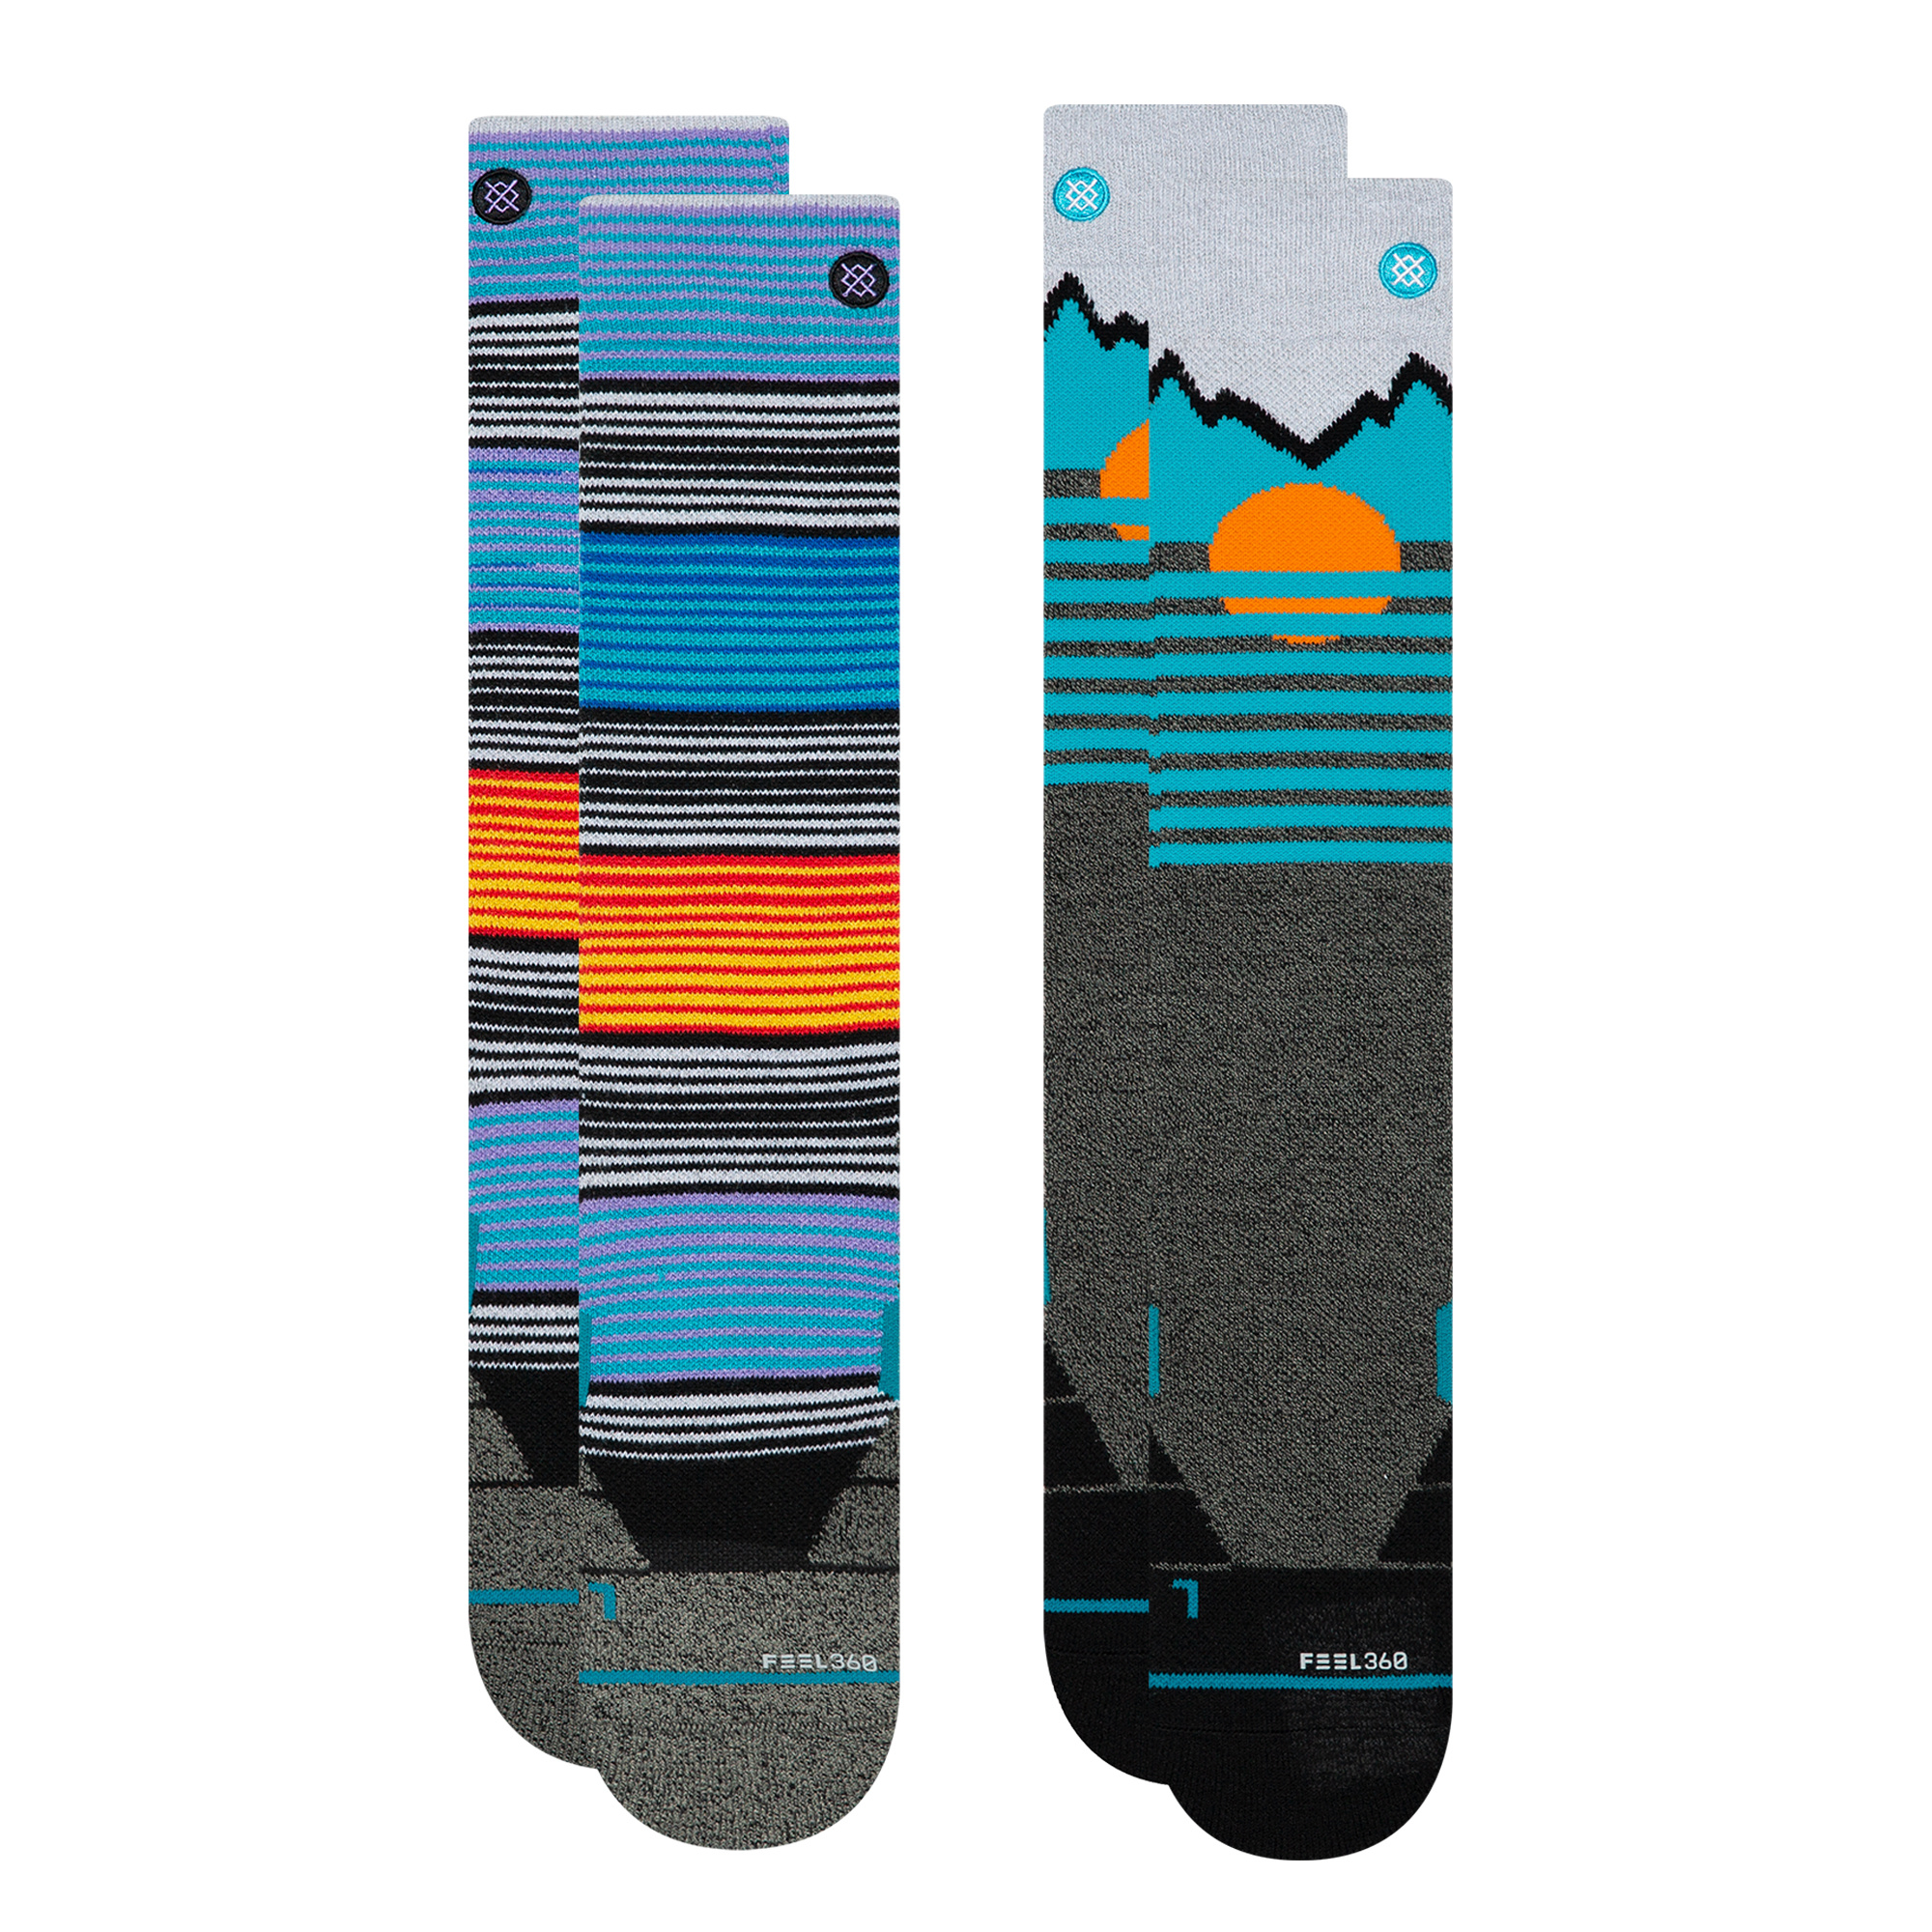 STANCE STANCE M'S MOUNTAIN 2-PACK SNOW SOCK